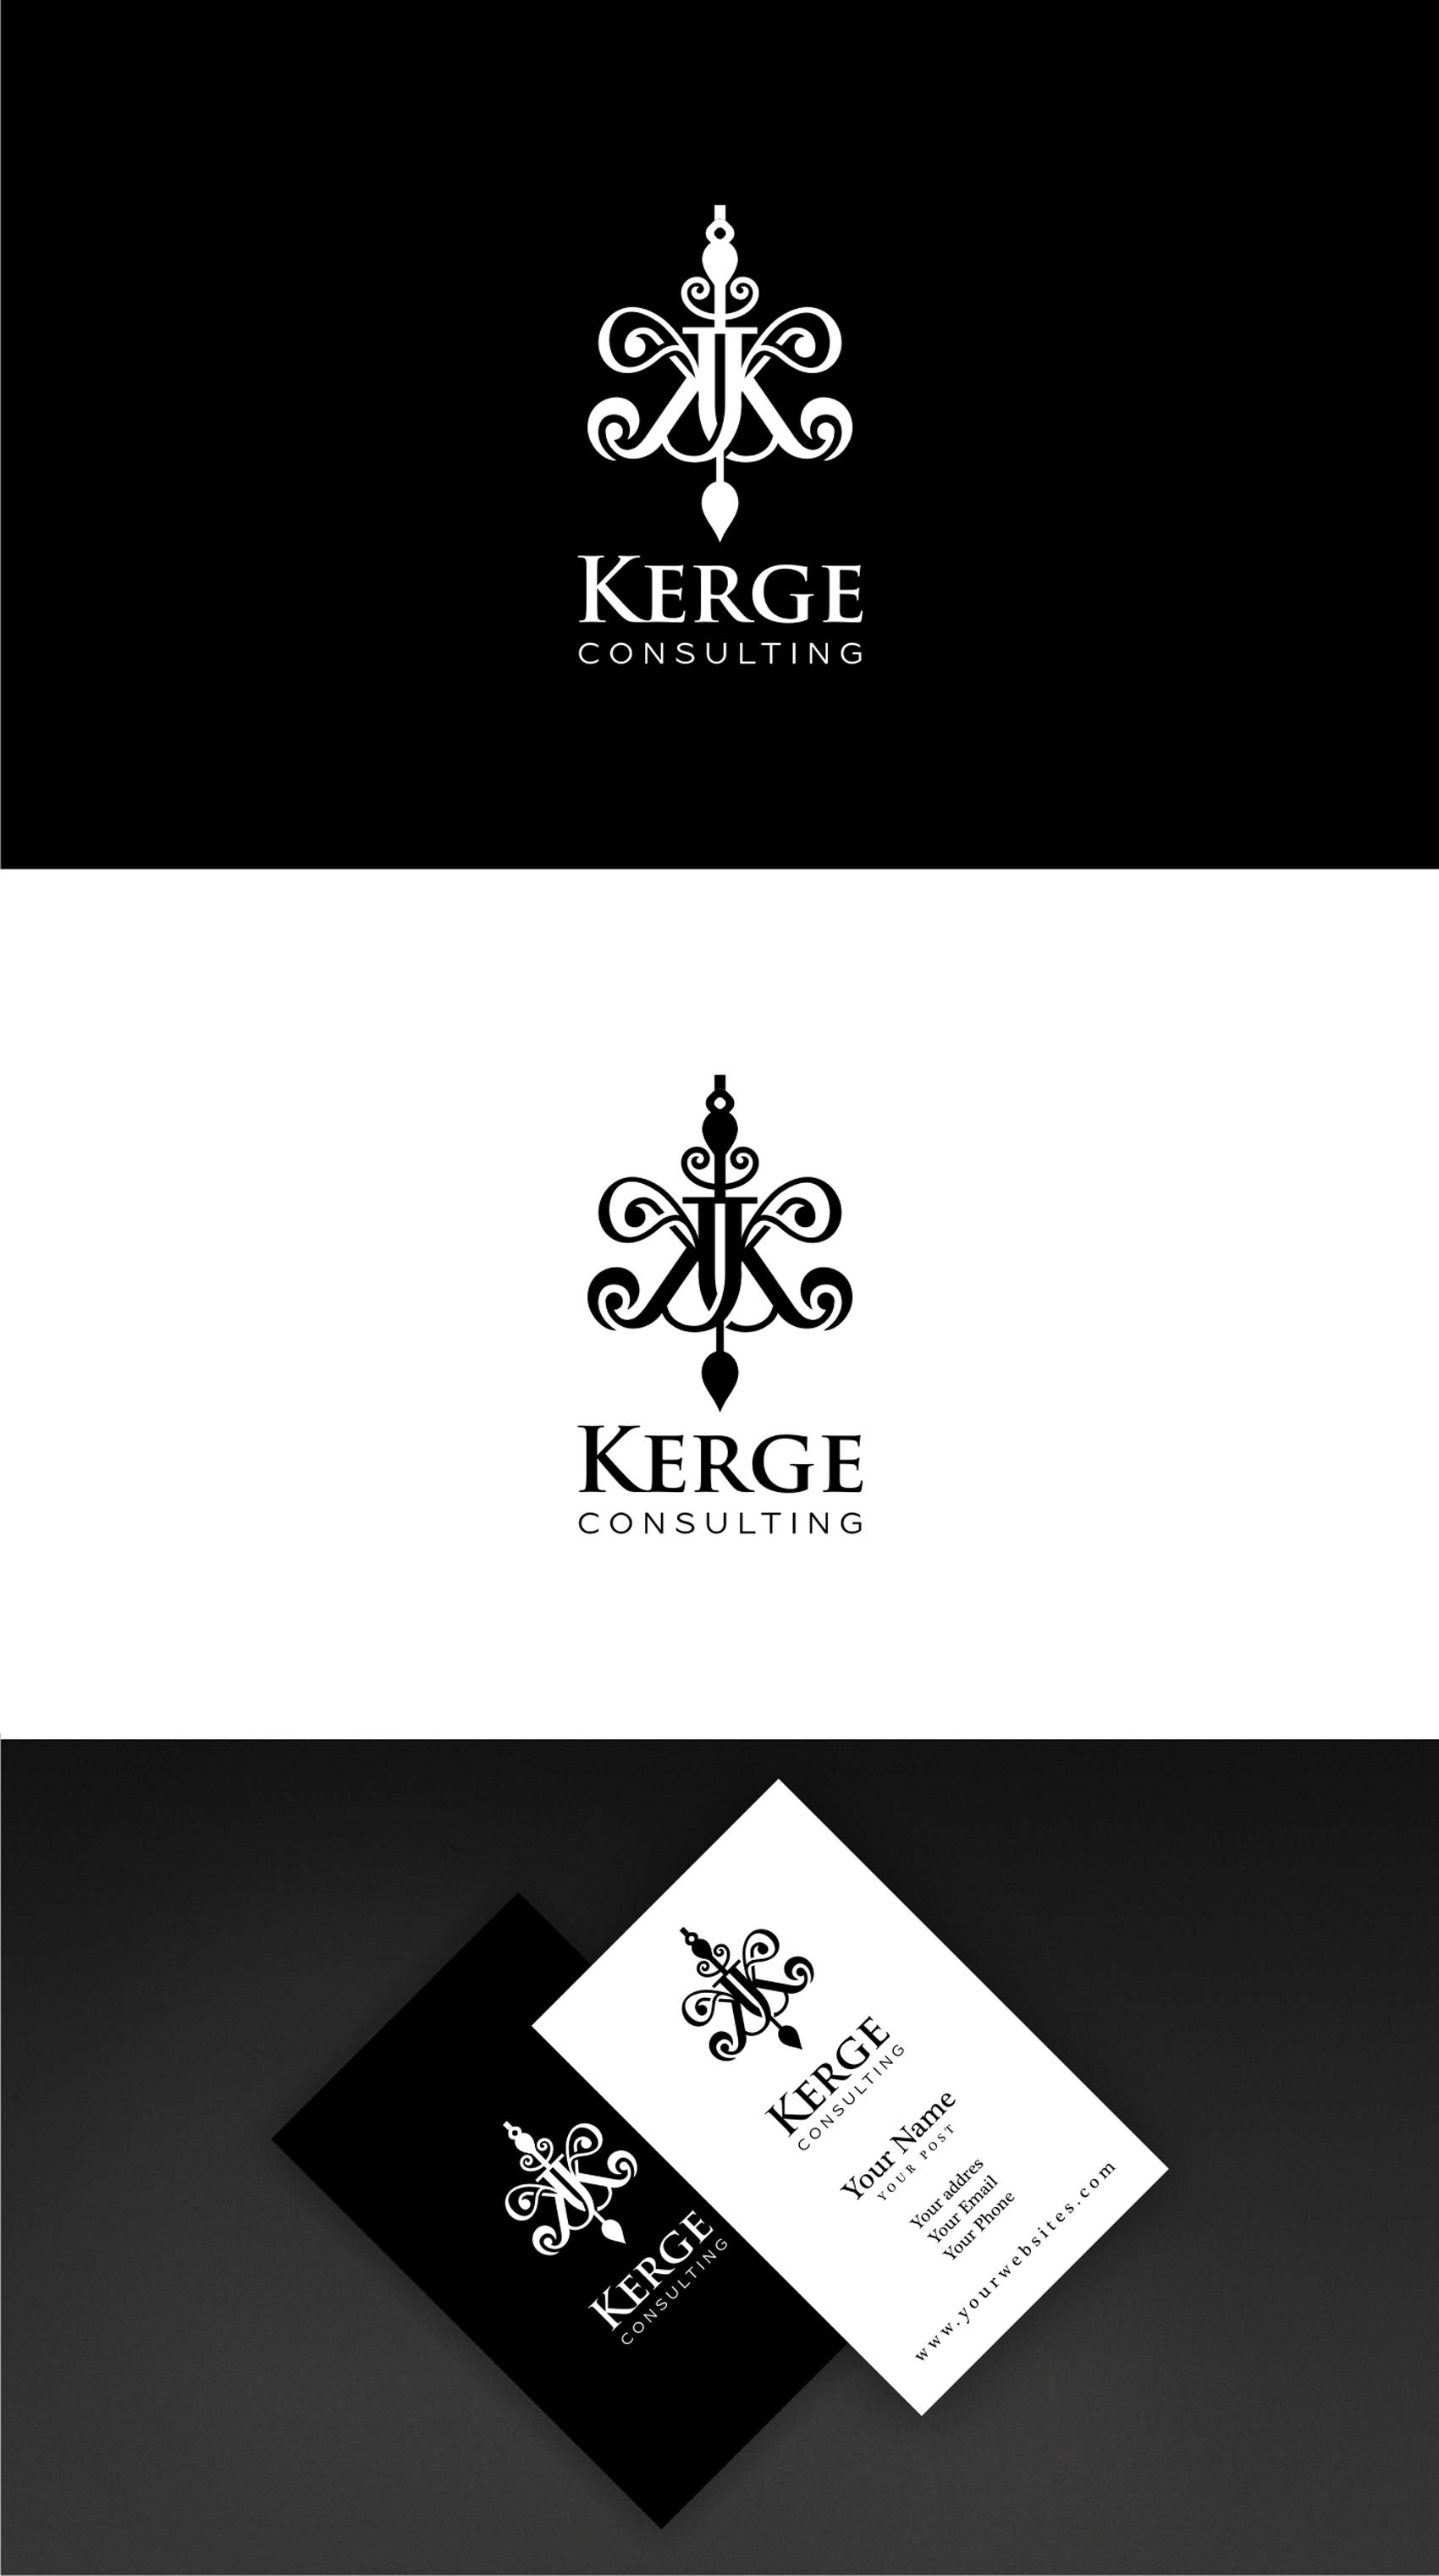 Develop a brand new logo for a small consulting business in the fashion industry